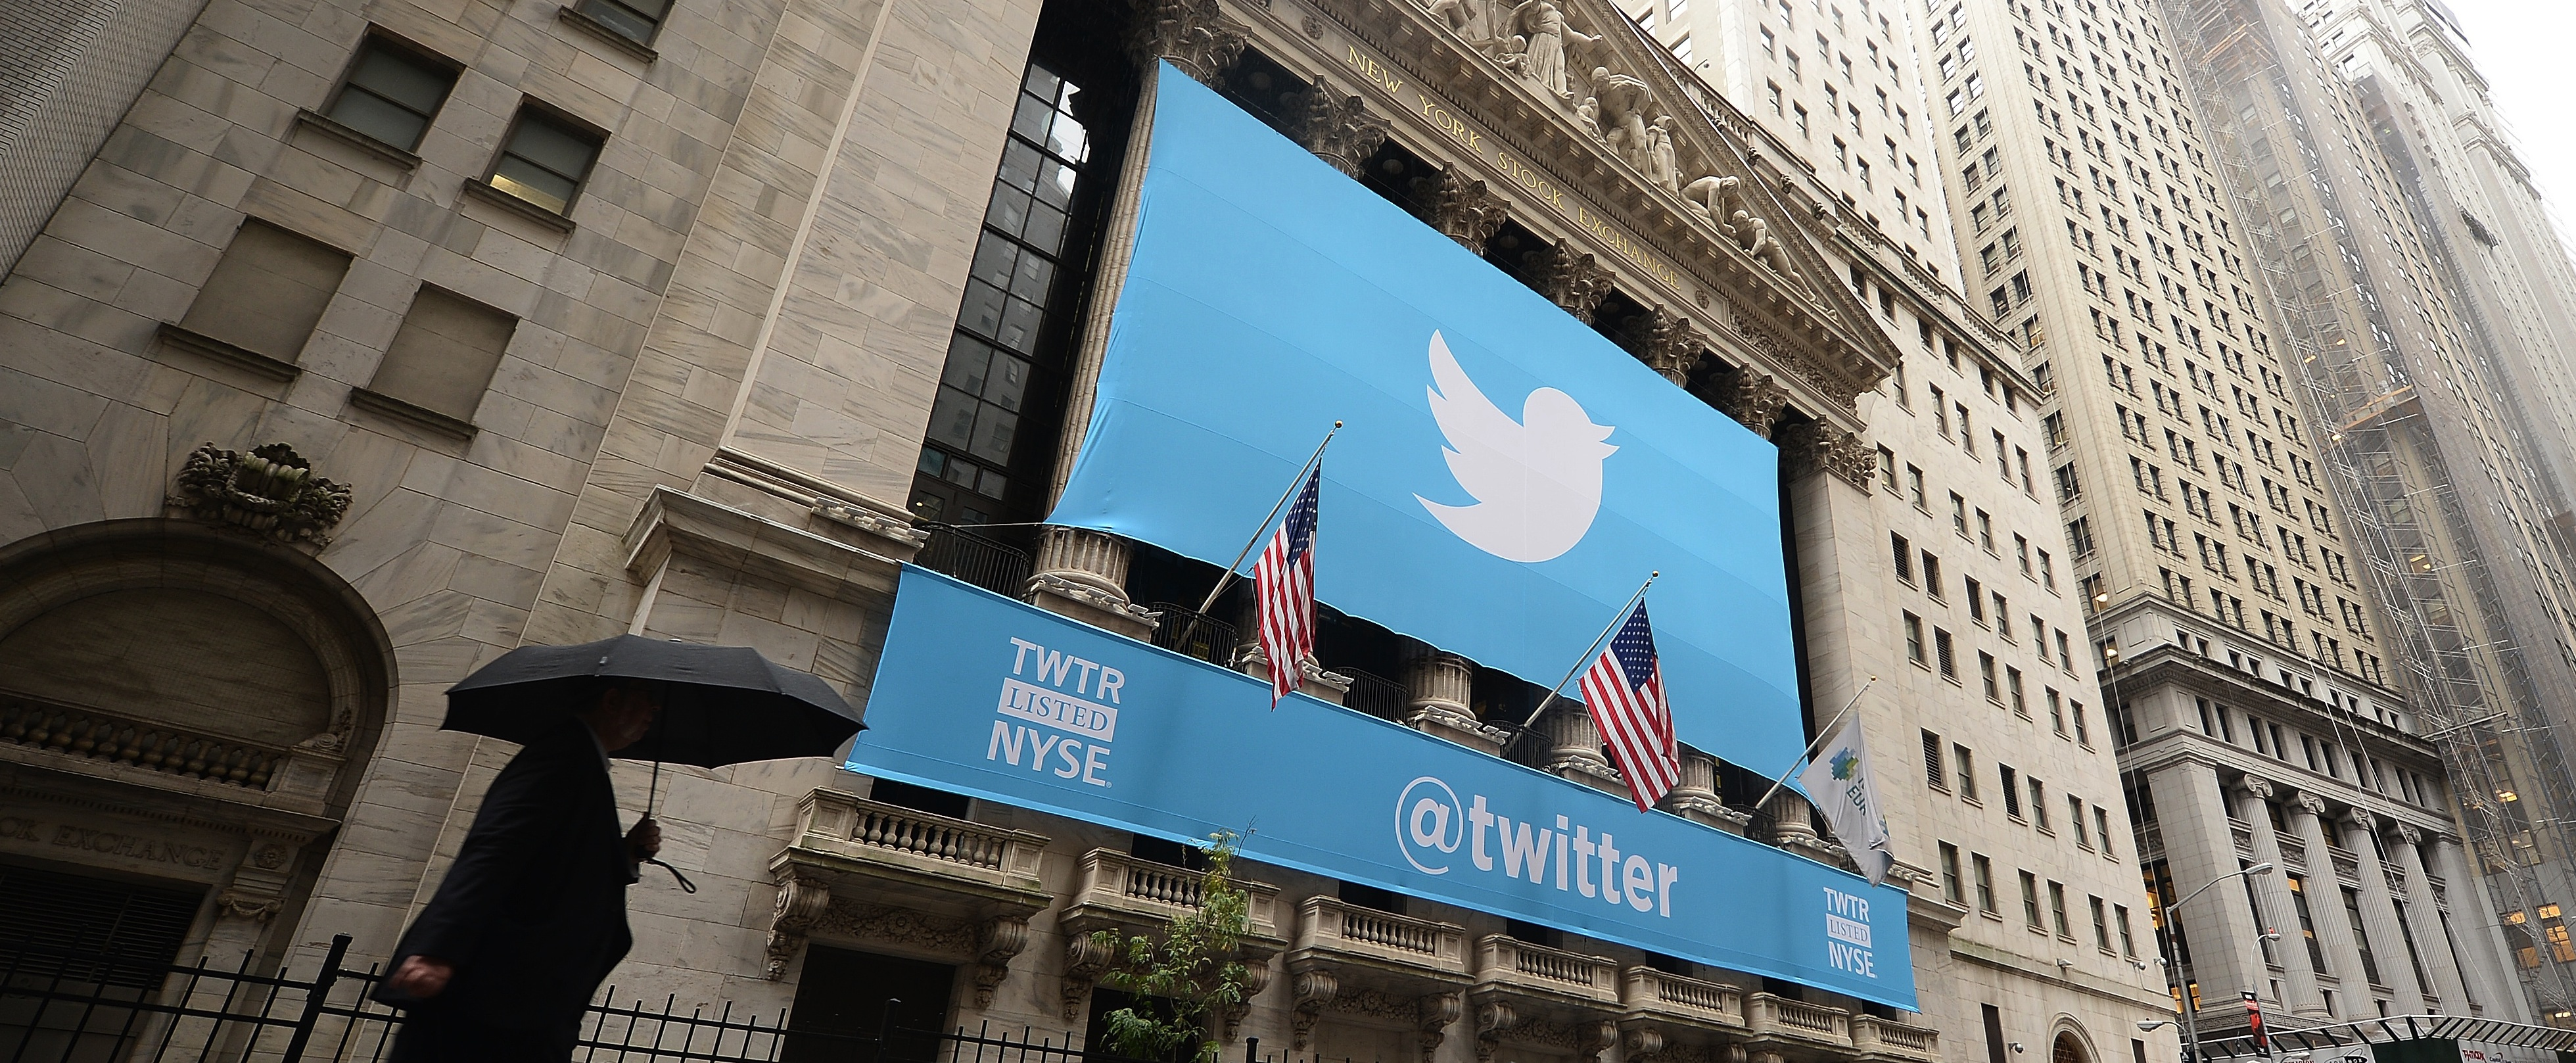 The Wellcome Trust charity earned over $100 million from Twitter's IPO